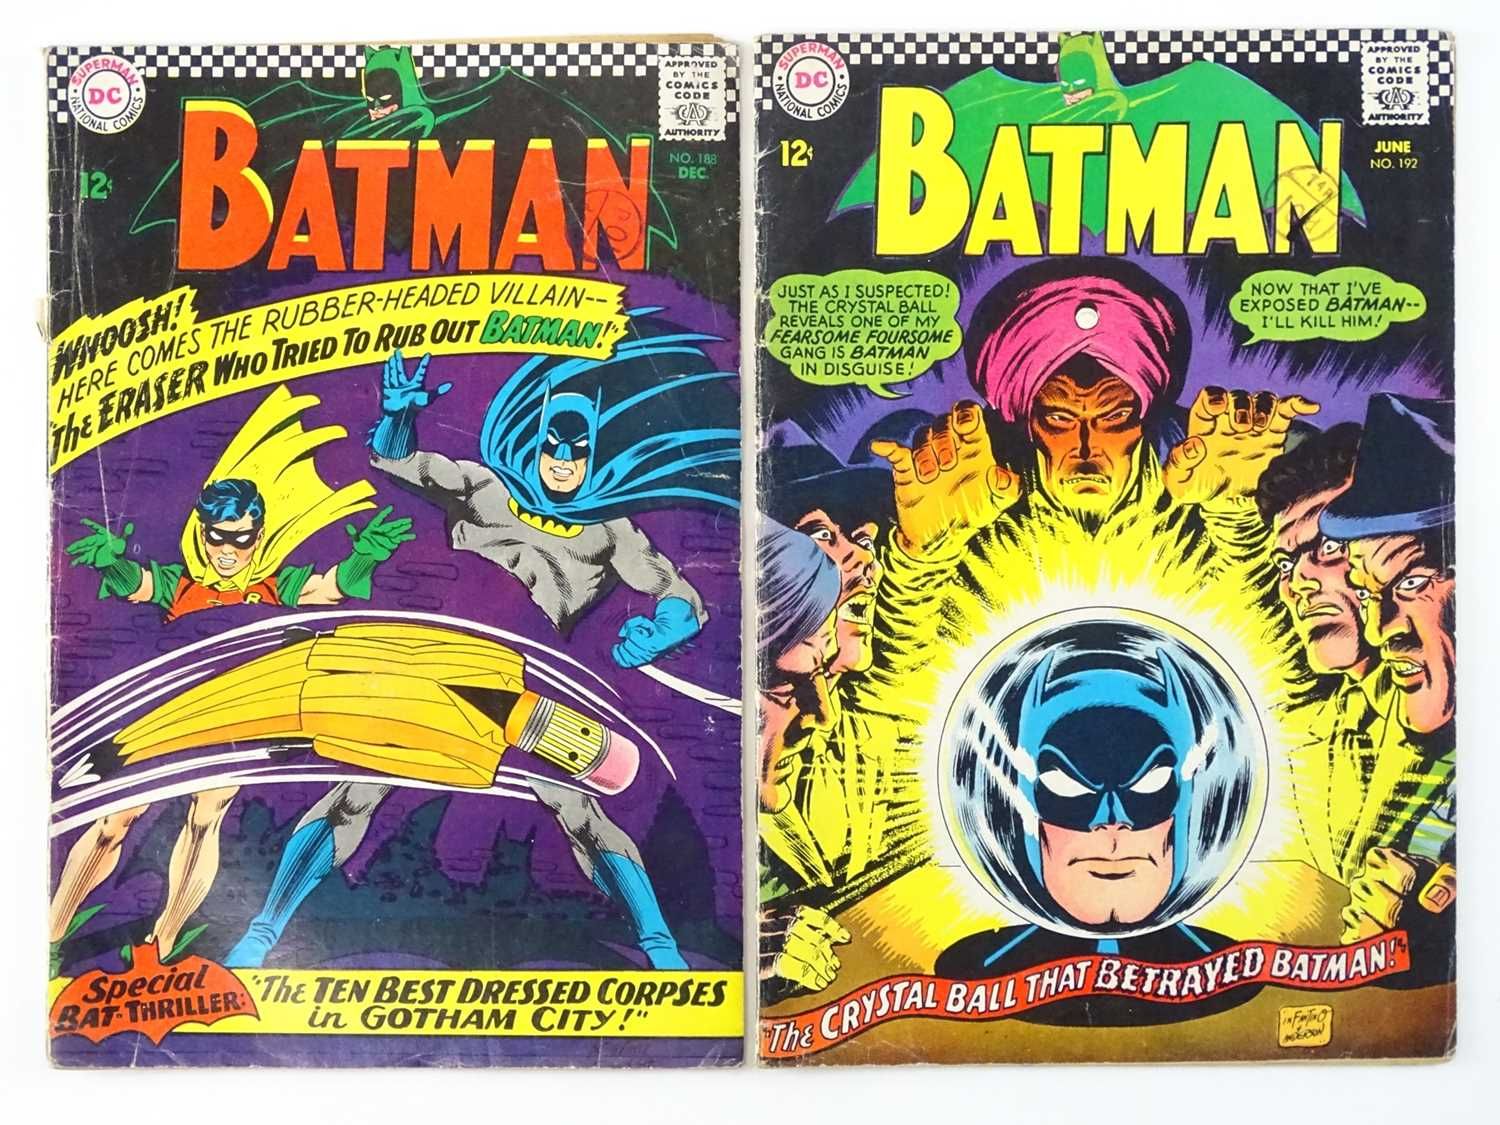 BATMAN #188 & 192 - (2 in Lot) - (1966/67 - DC - UK Cover Price) - Includes First appearance